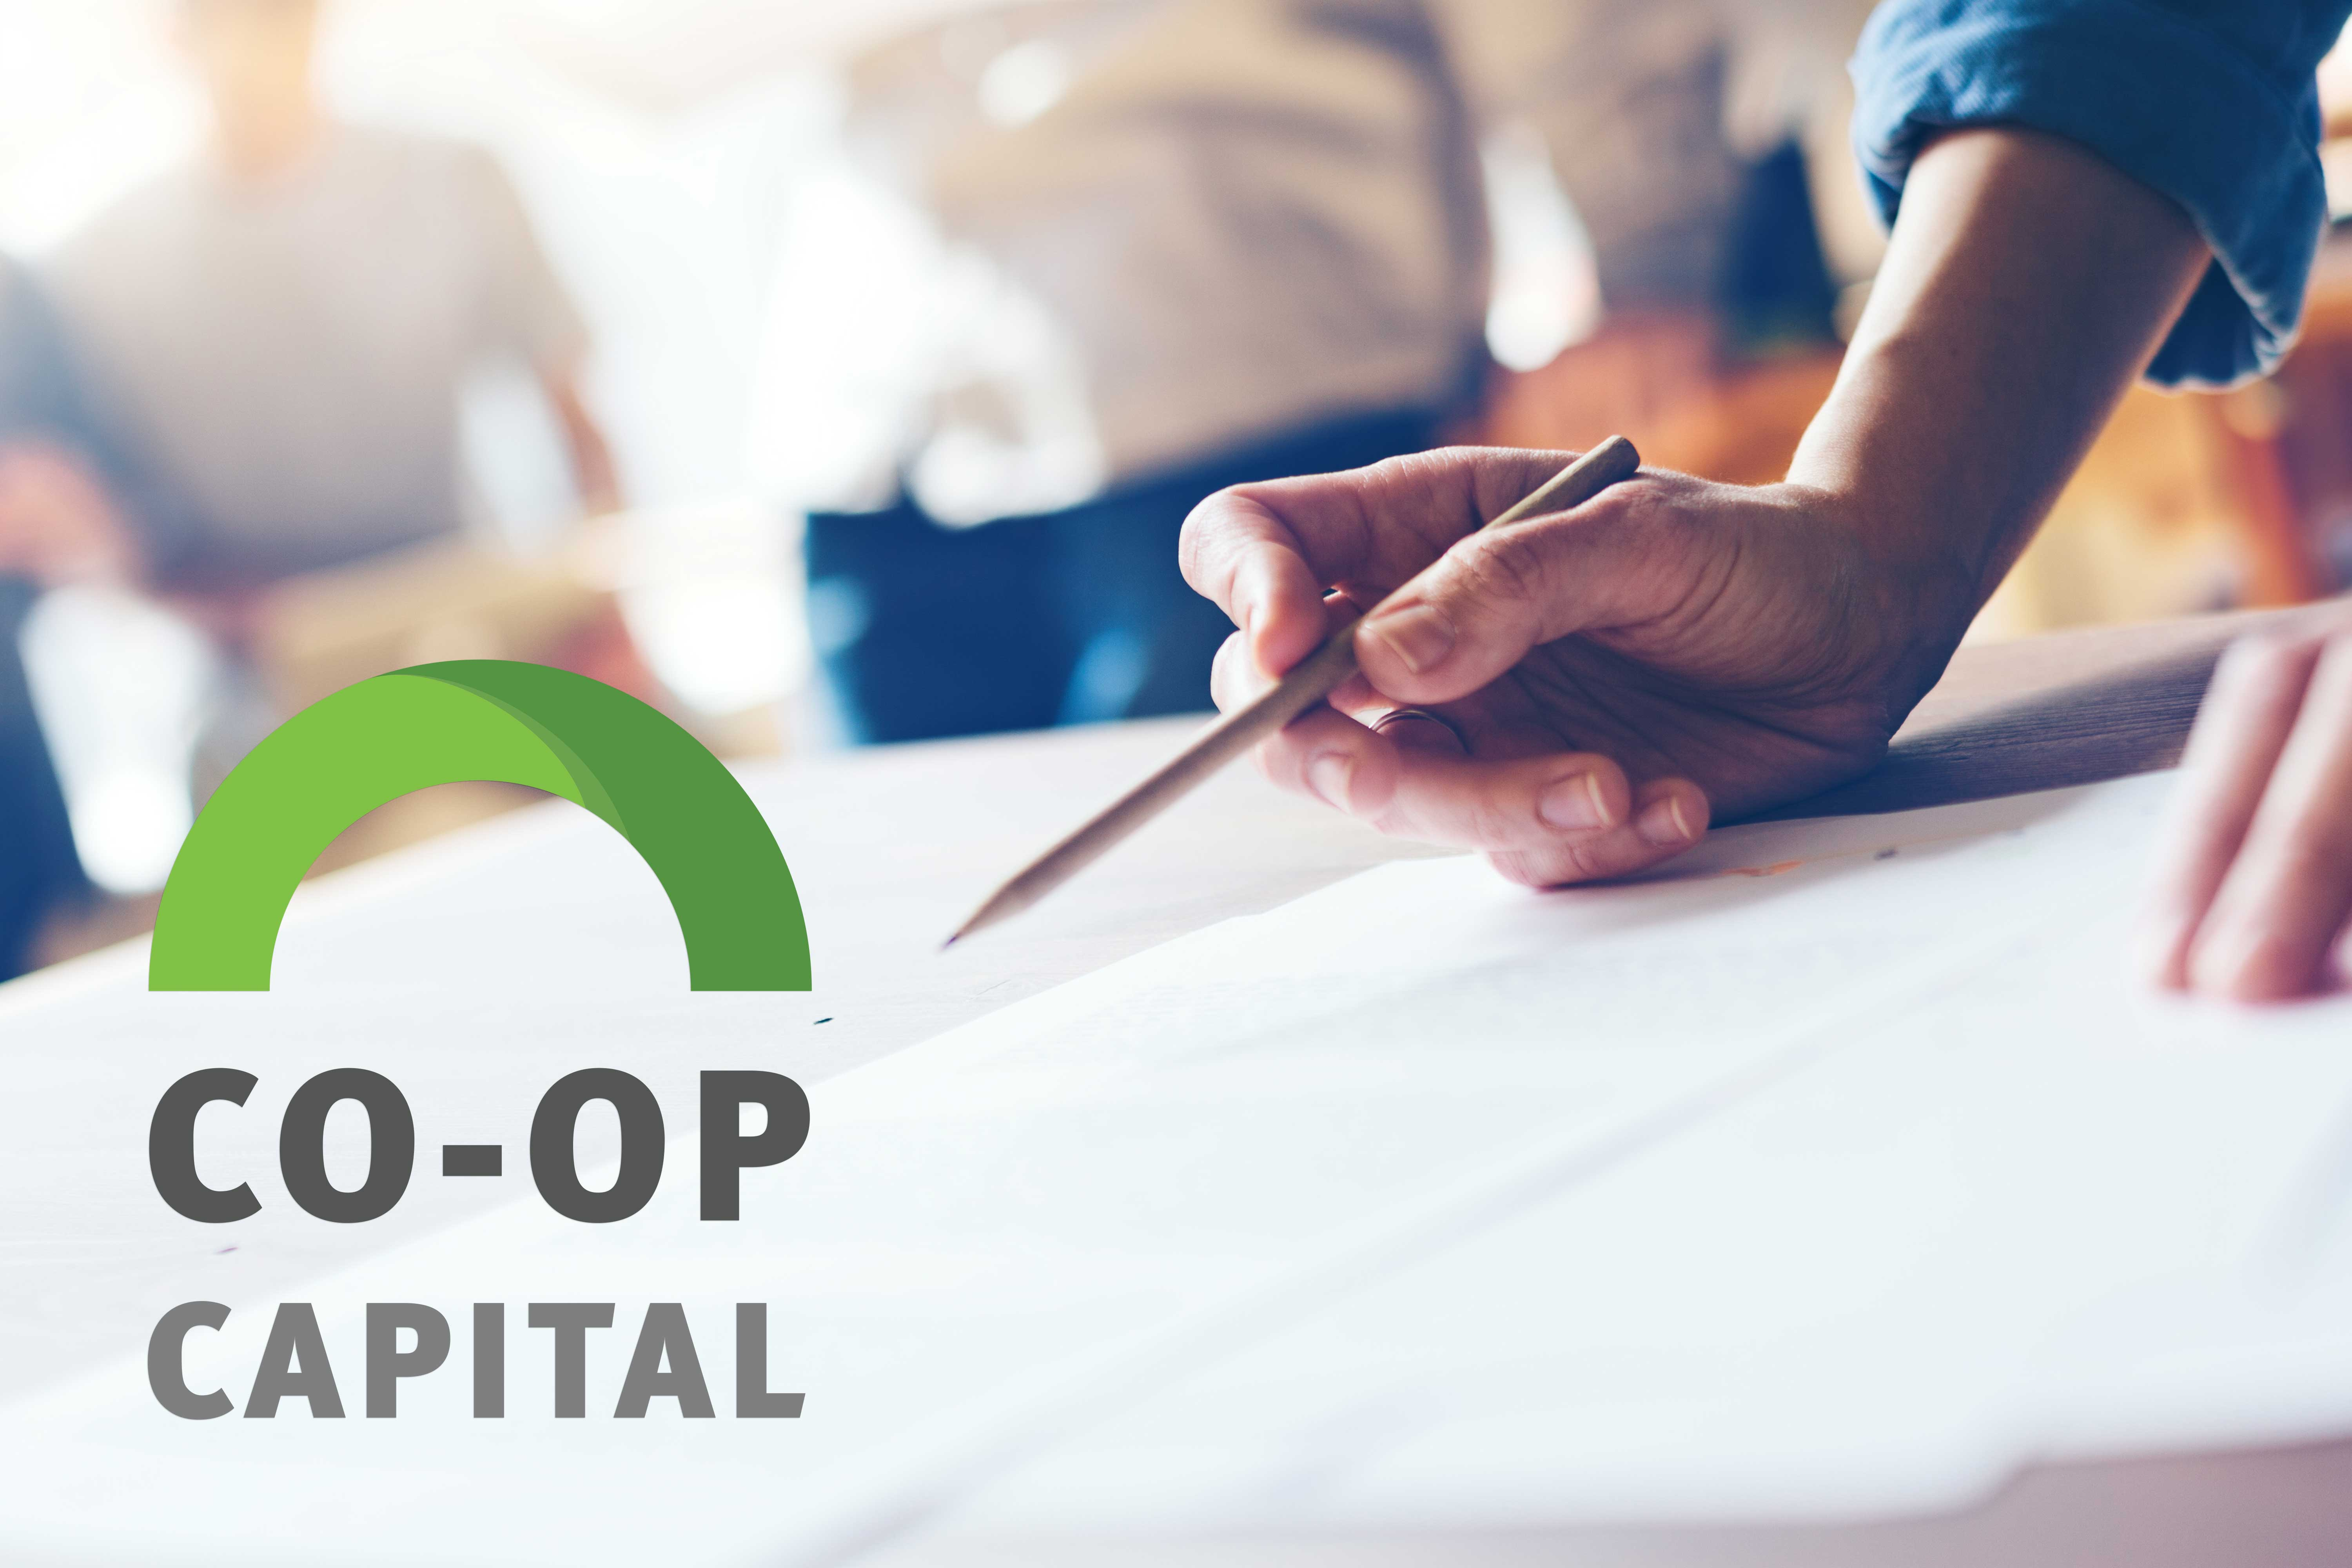 Co-op Capital